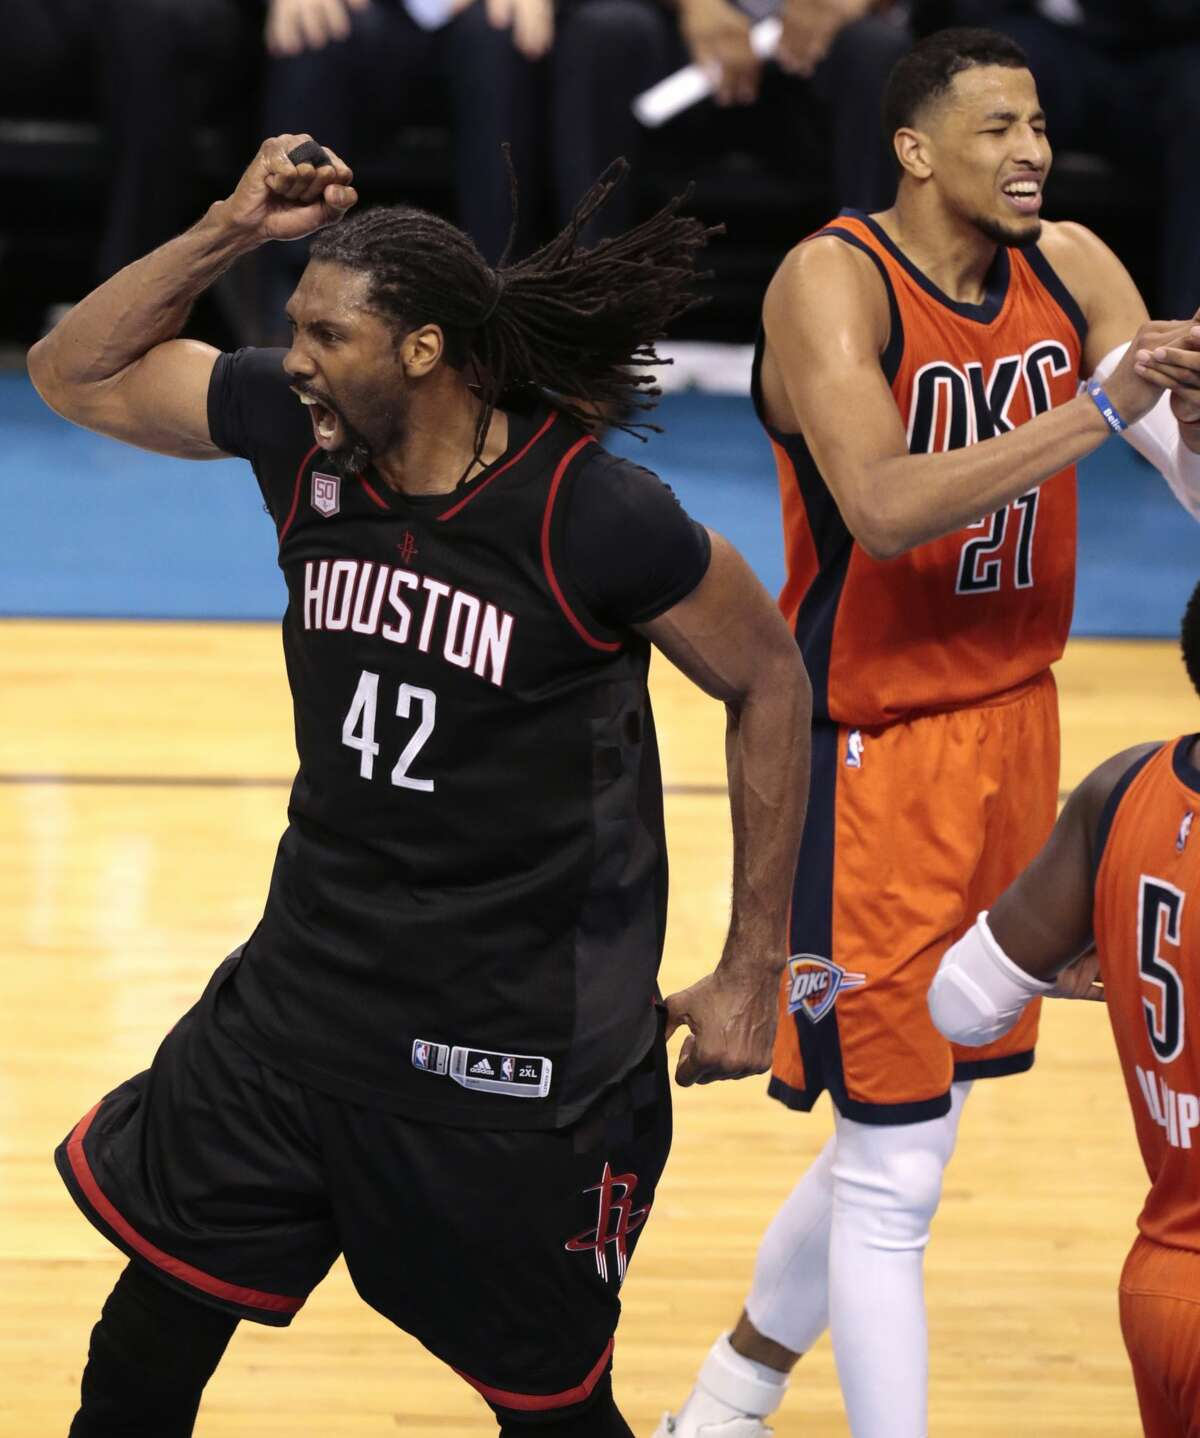 Houston Rockets center Nene (42) celebrates after scoring on Oklahoma City Thunder forward Andre Roberson (21) during the fourth quarter of Game 4 of the NBA Western Conference first-round playoff series at Chesapeake Energy Arena on Sunday, April 23, 2017, in Oklahoma City. The Rockets beat the Thunder 113-109, to take a 3-1 lead in the best-of-seven series. ( Brett Coomer / Houston Chronicle )